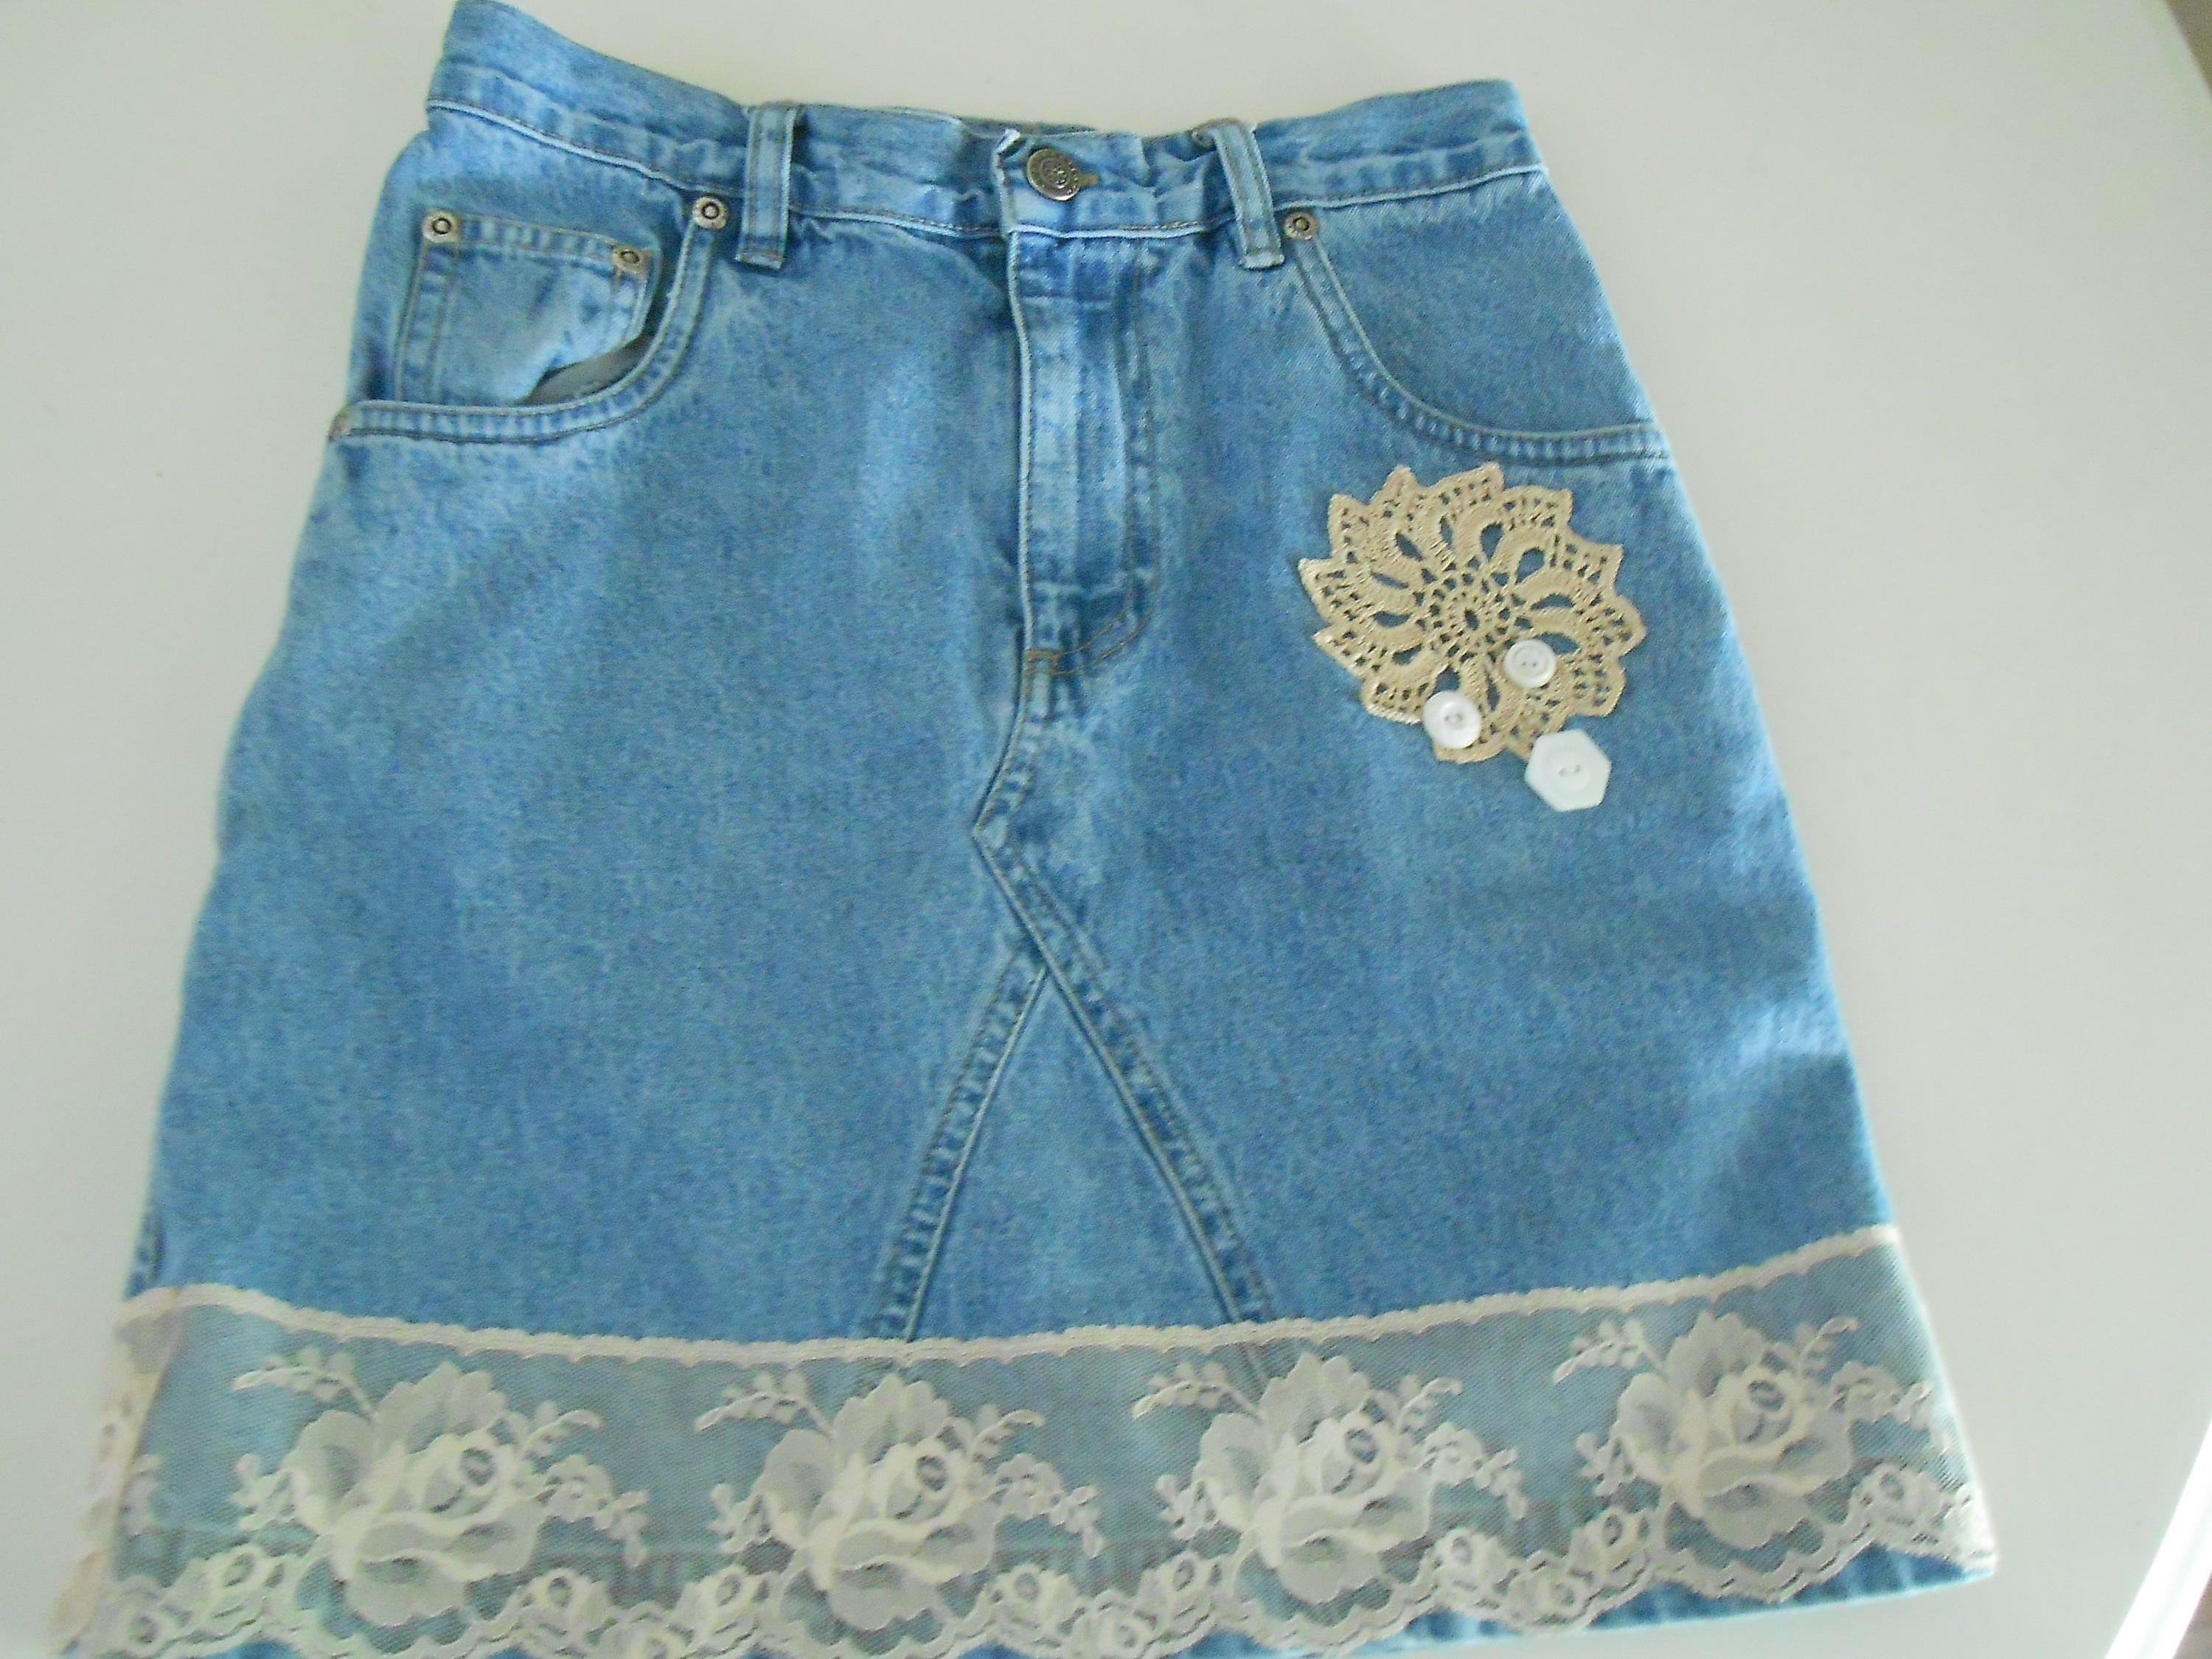 88e3a93ca0 up cycled denim jean skirt doilies for girls size 7-8 | Etsy